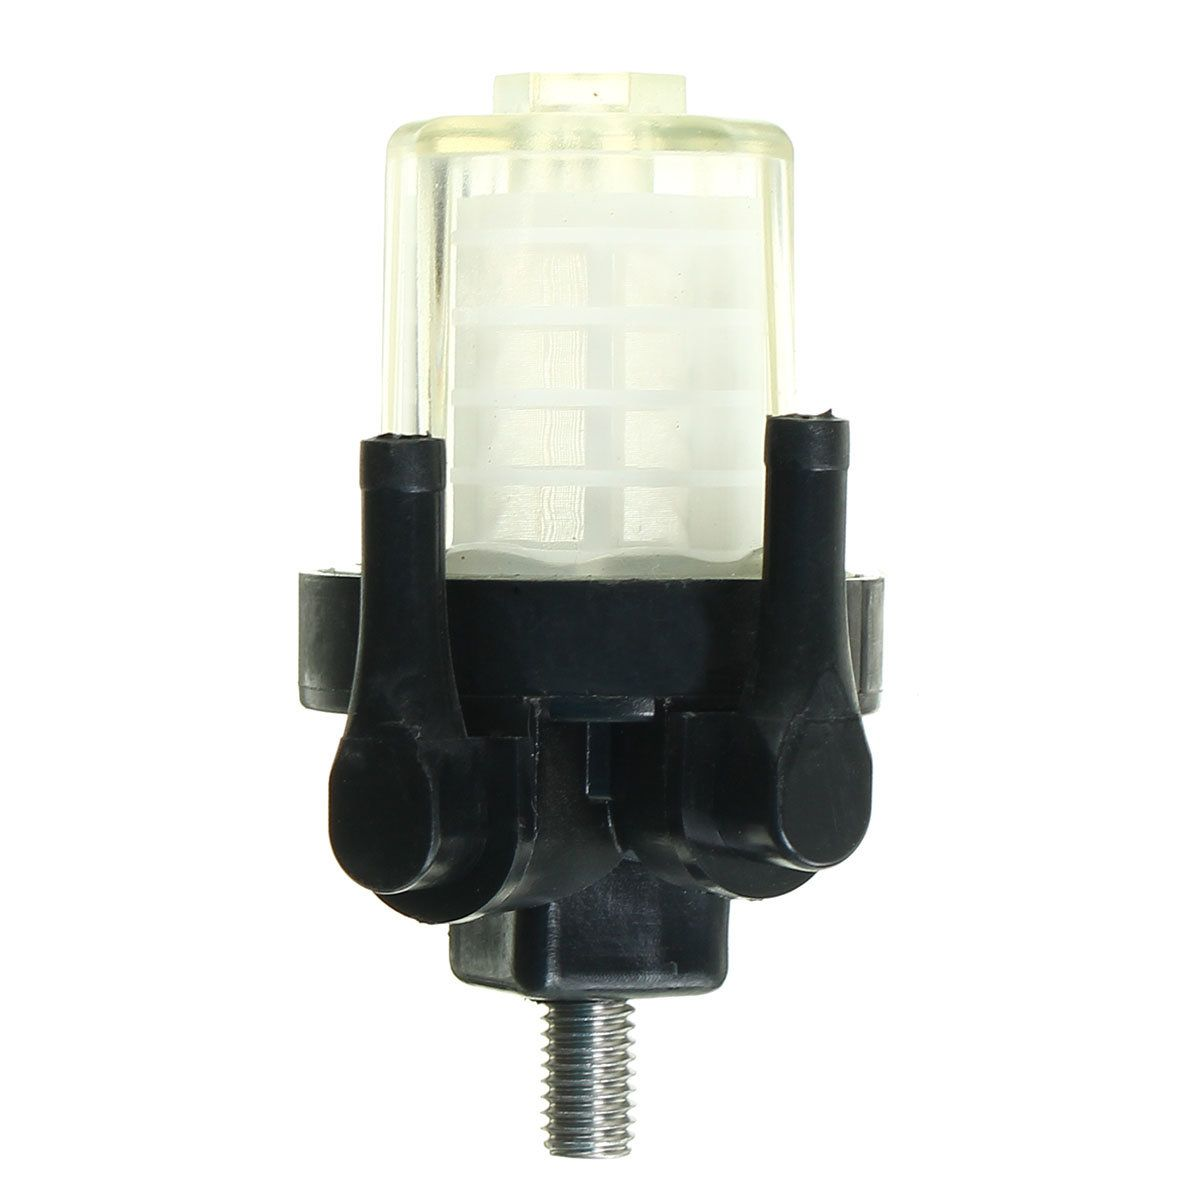 Outboard Fuel Filter Assy For Yamaha Motor Fit 5hp 30hp 61n Virago 250 24560